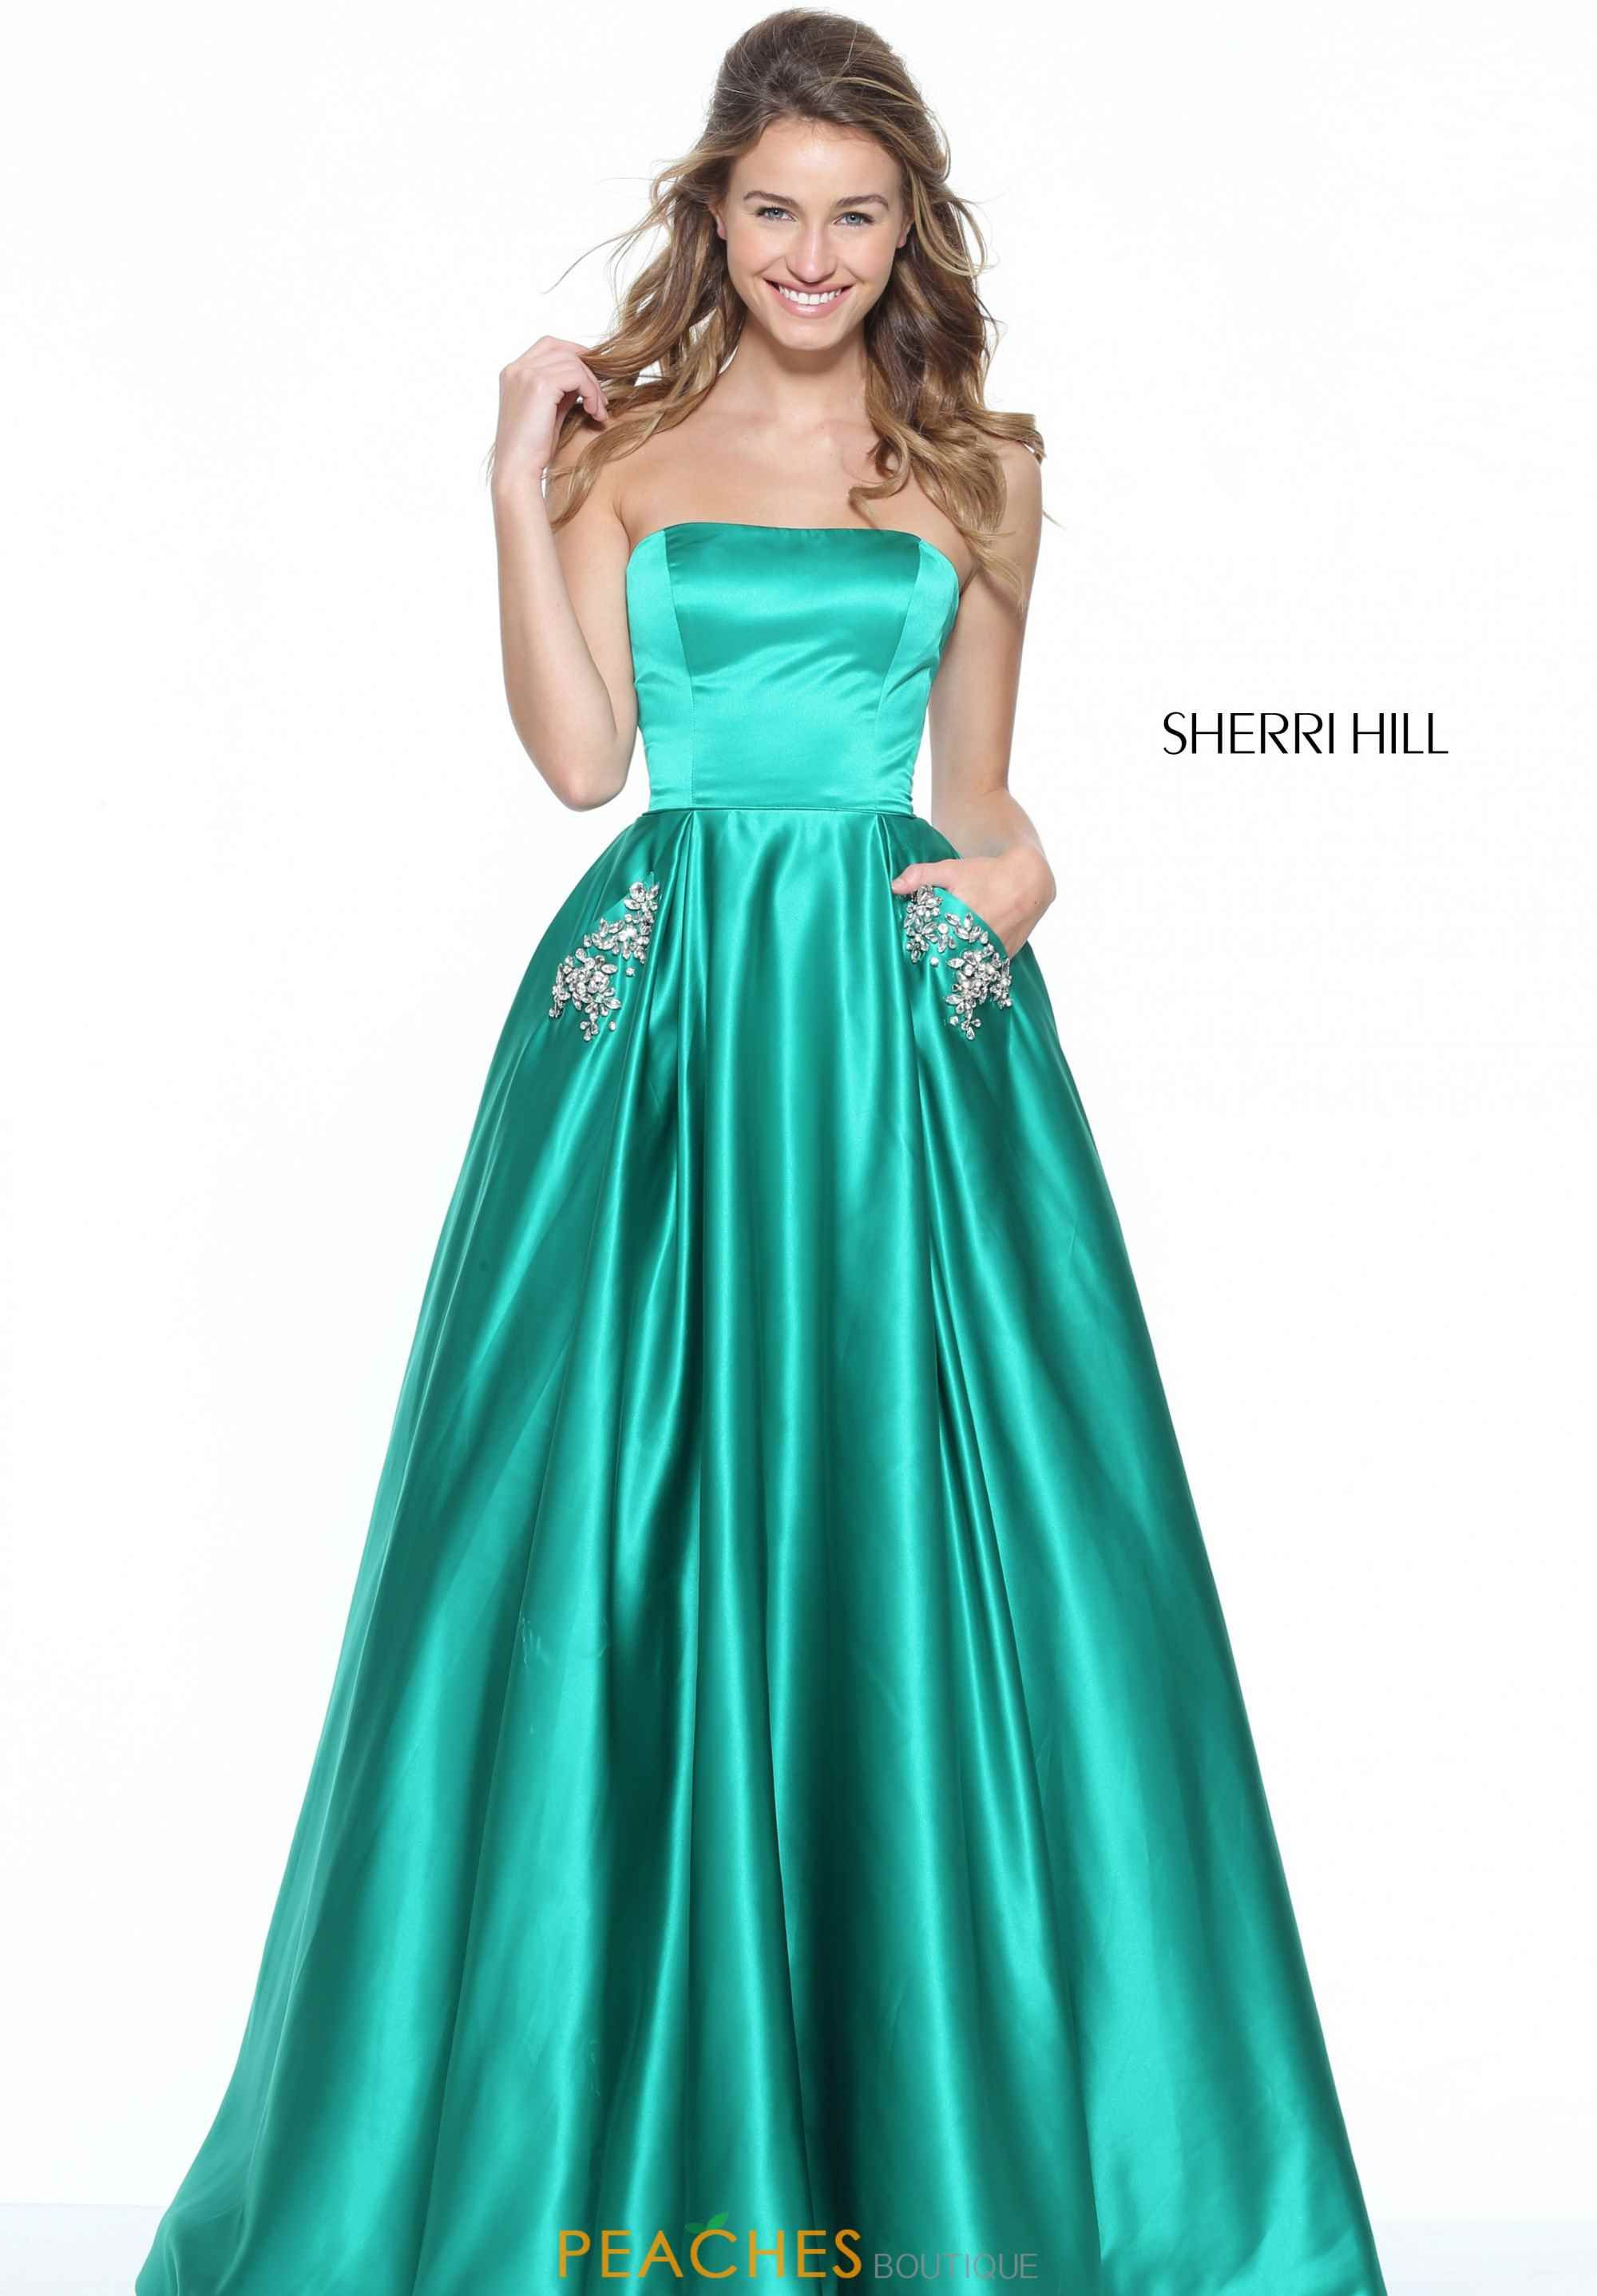 Sherri Hill 50812 Sherri Hill dresses are the most gorgeous dresses that  every girl wants to wear to Prom or Homecoming. Pure Couture Prom is one of  the top ...